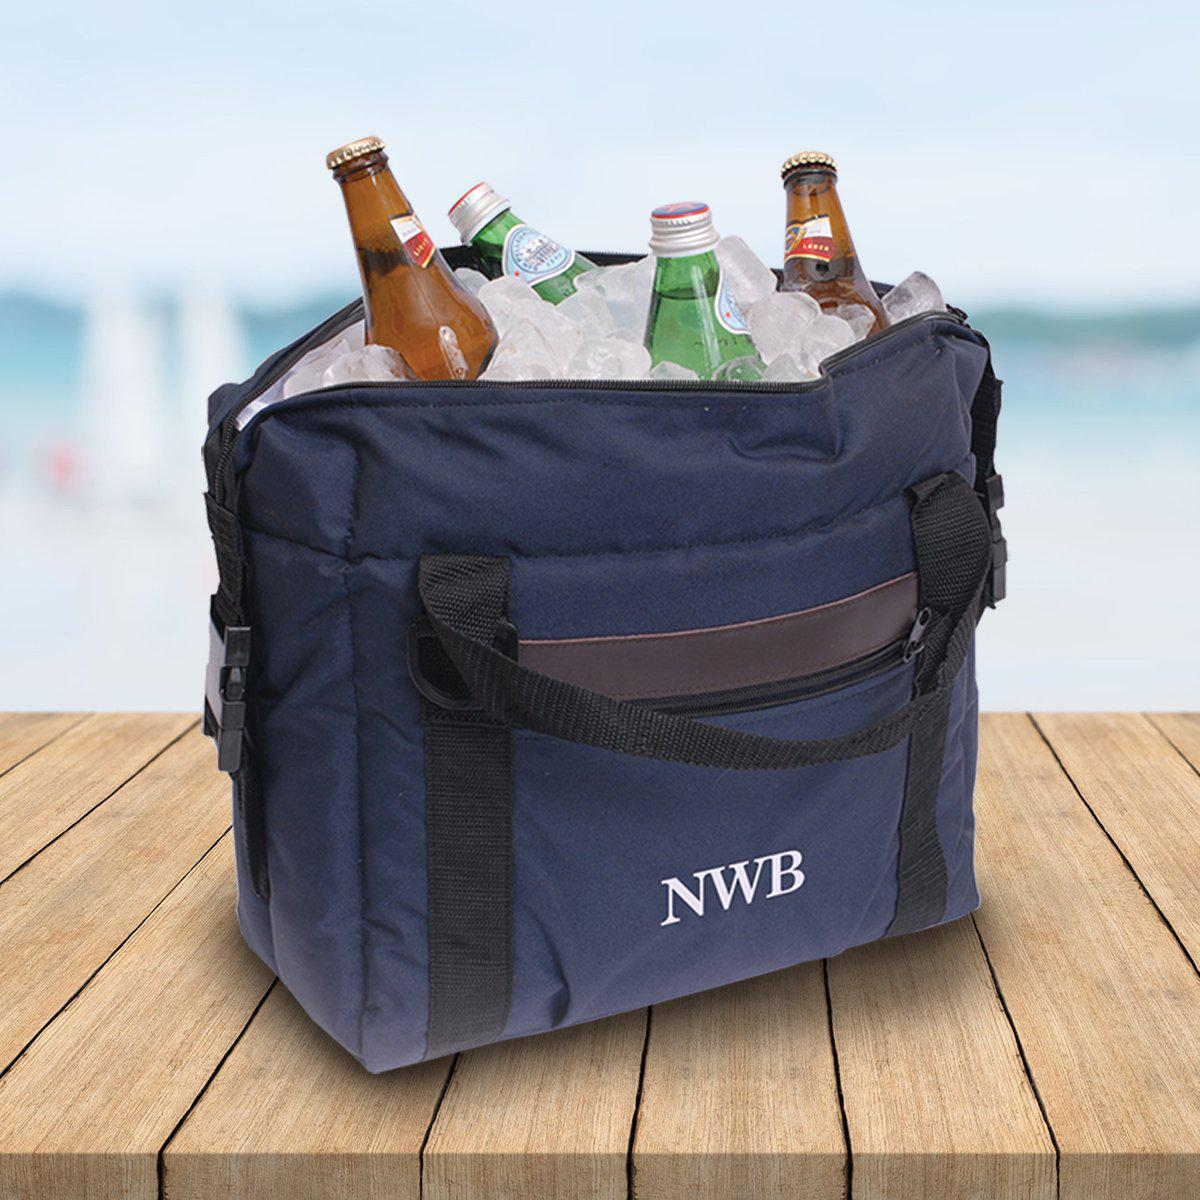 Personalized Soft Sided Coolers